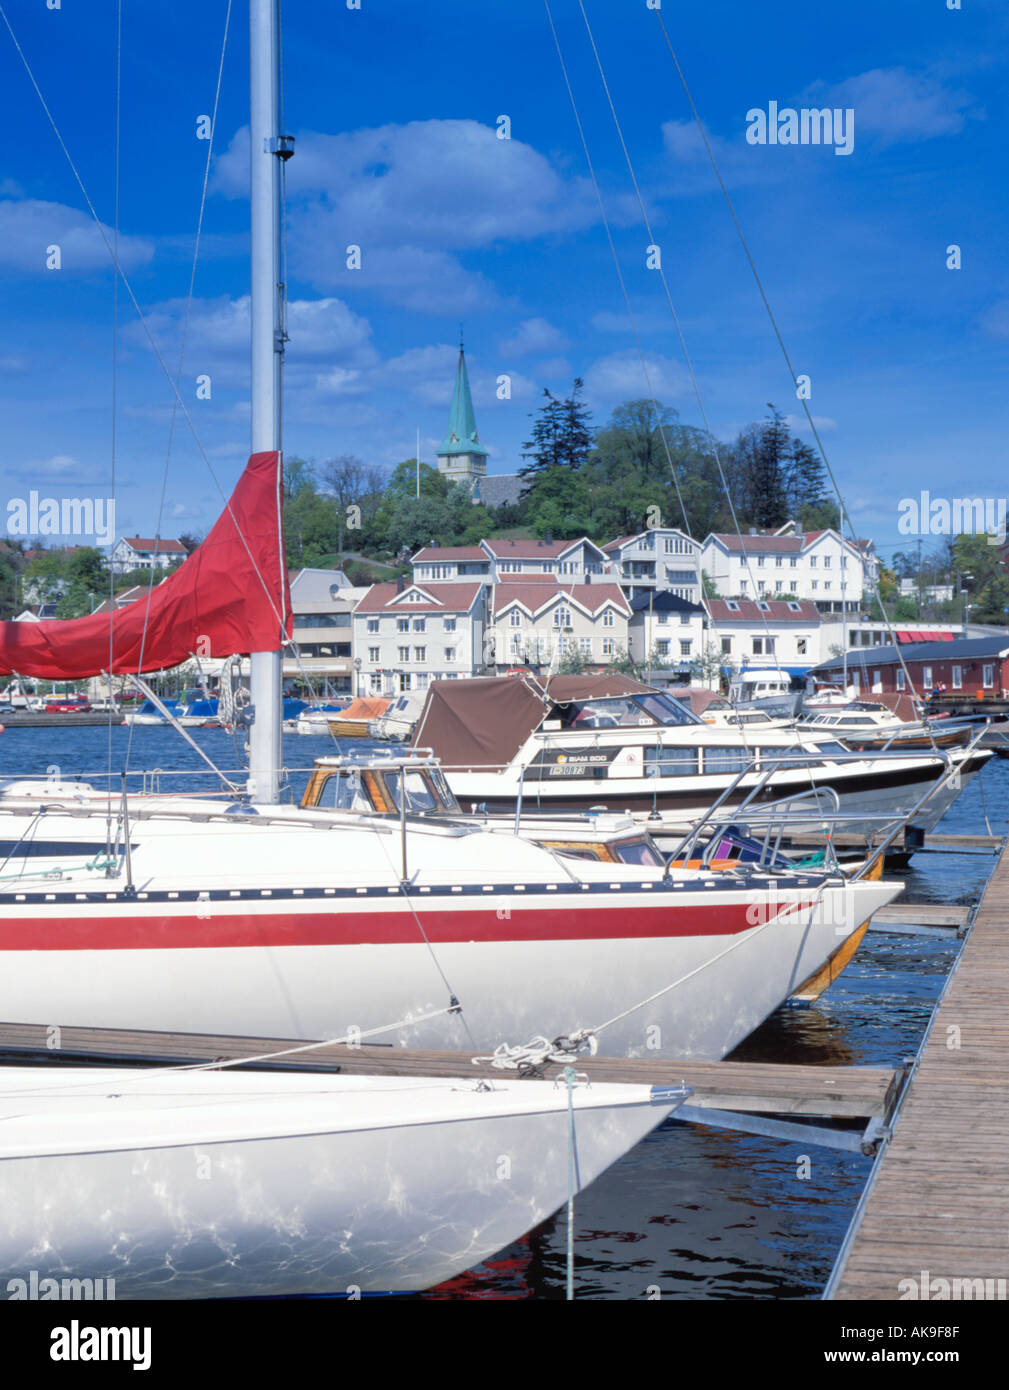 View over fibreglass hulled boats and harbour, Grimstad, Aust-Agder, Norway. - Stock Image